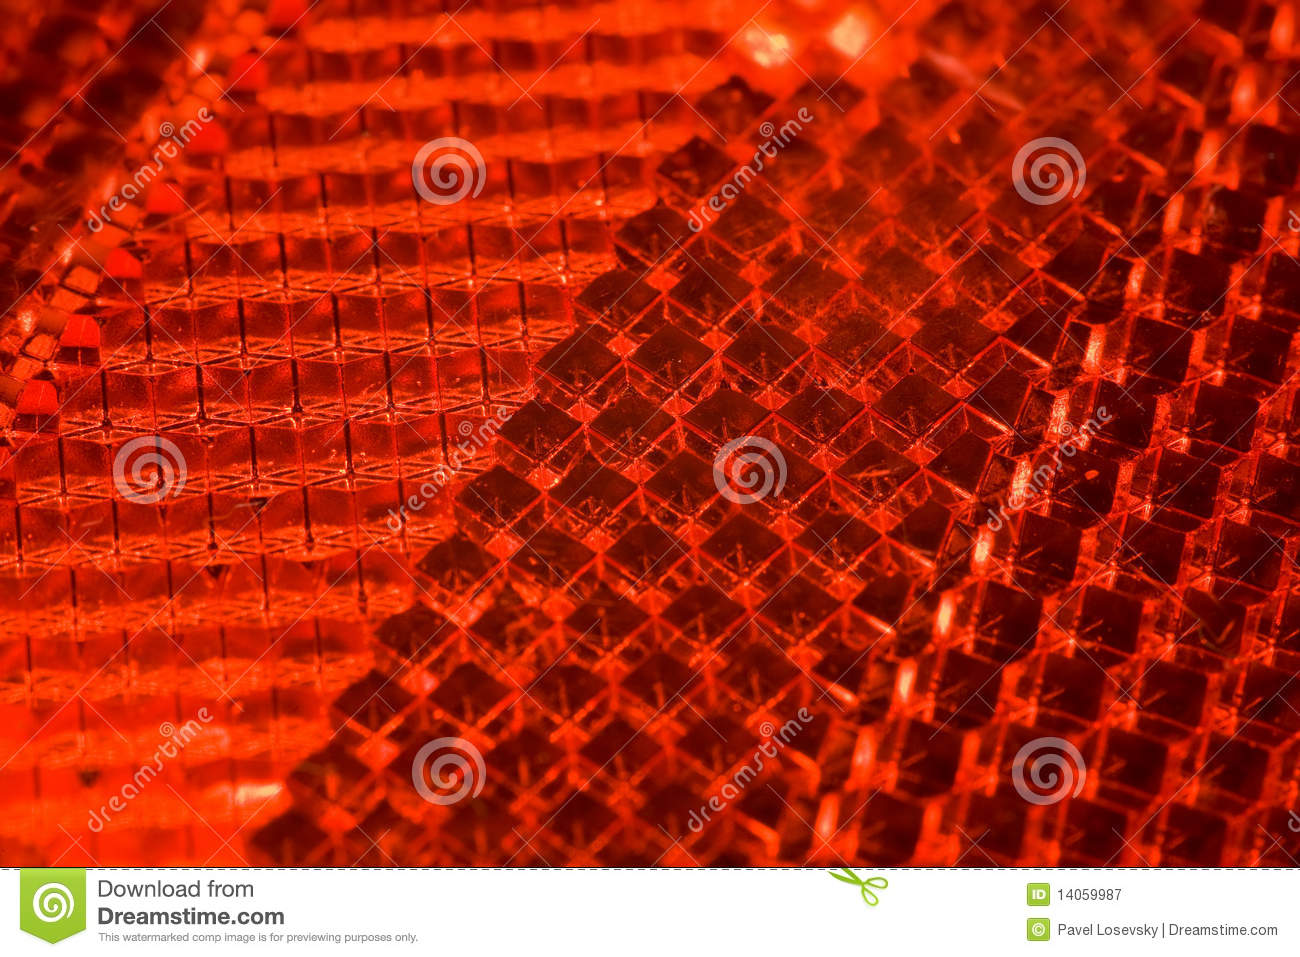 Bright Red Textural Pattern, Fragment Of Cataphot Royalty Free Stock Photography